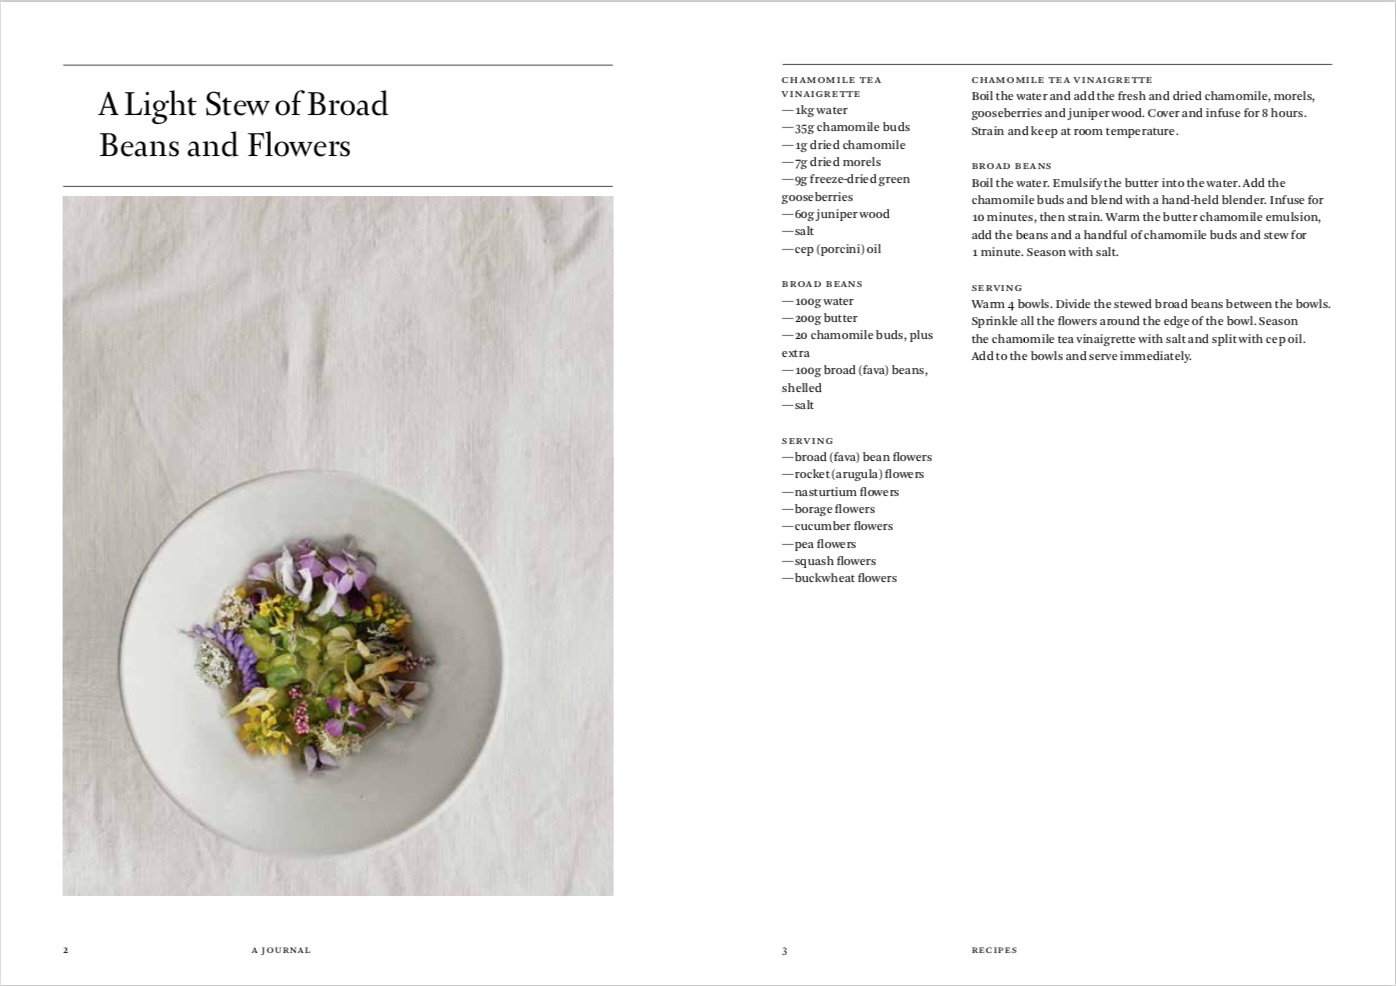 By Rene Redzepi from A Work in Progress: A Journal copyright Phaidon 2019